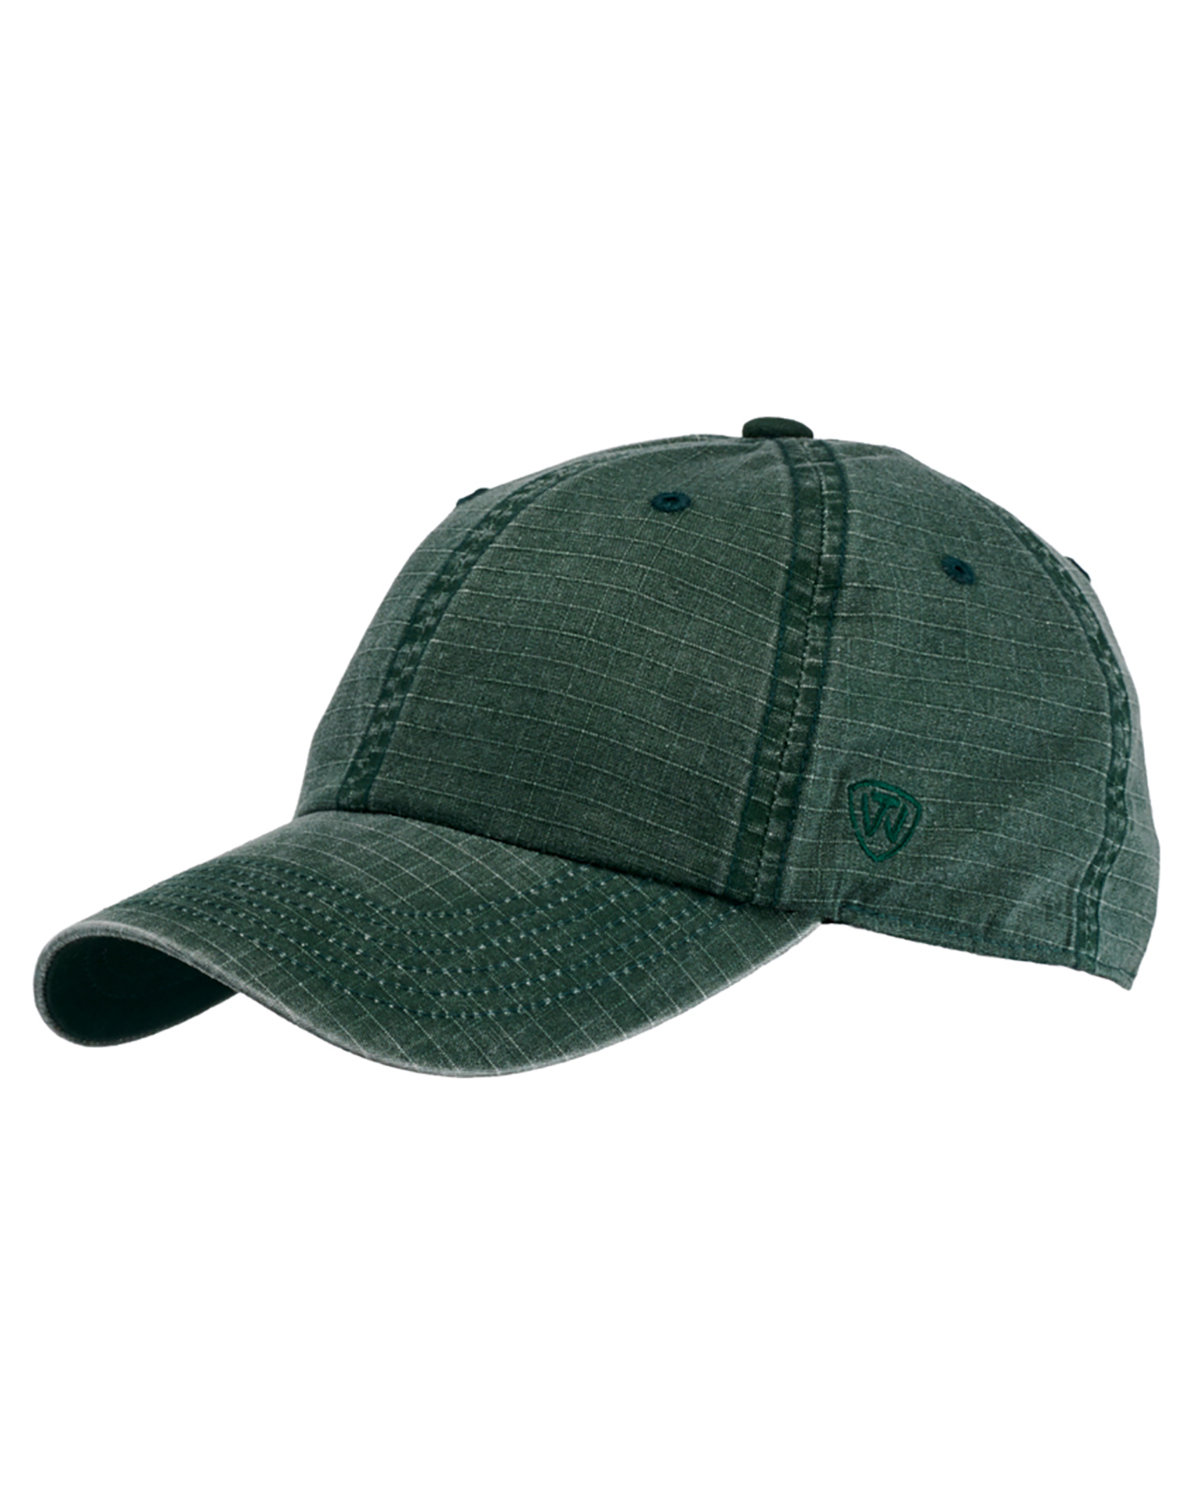 Top Of The World Ripper Washed Cotton Ripstop Hat FOREST GREEN